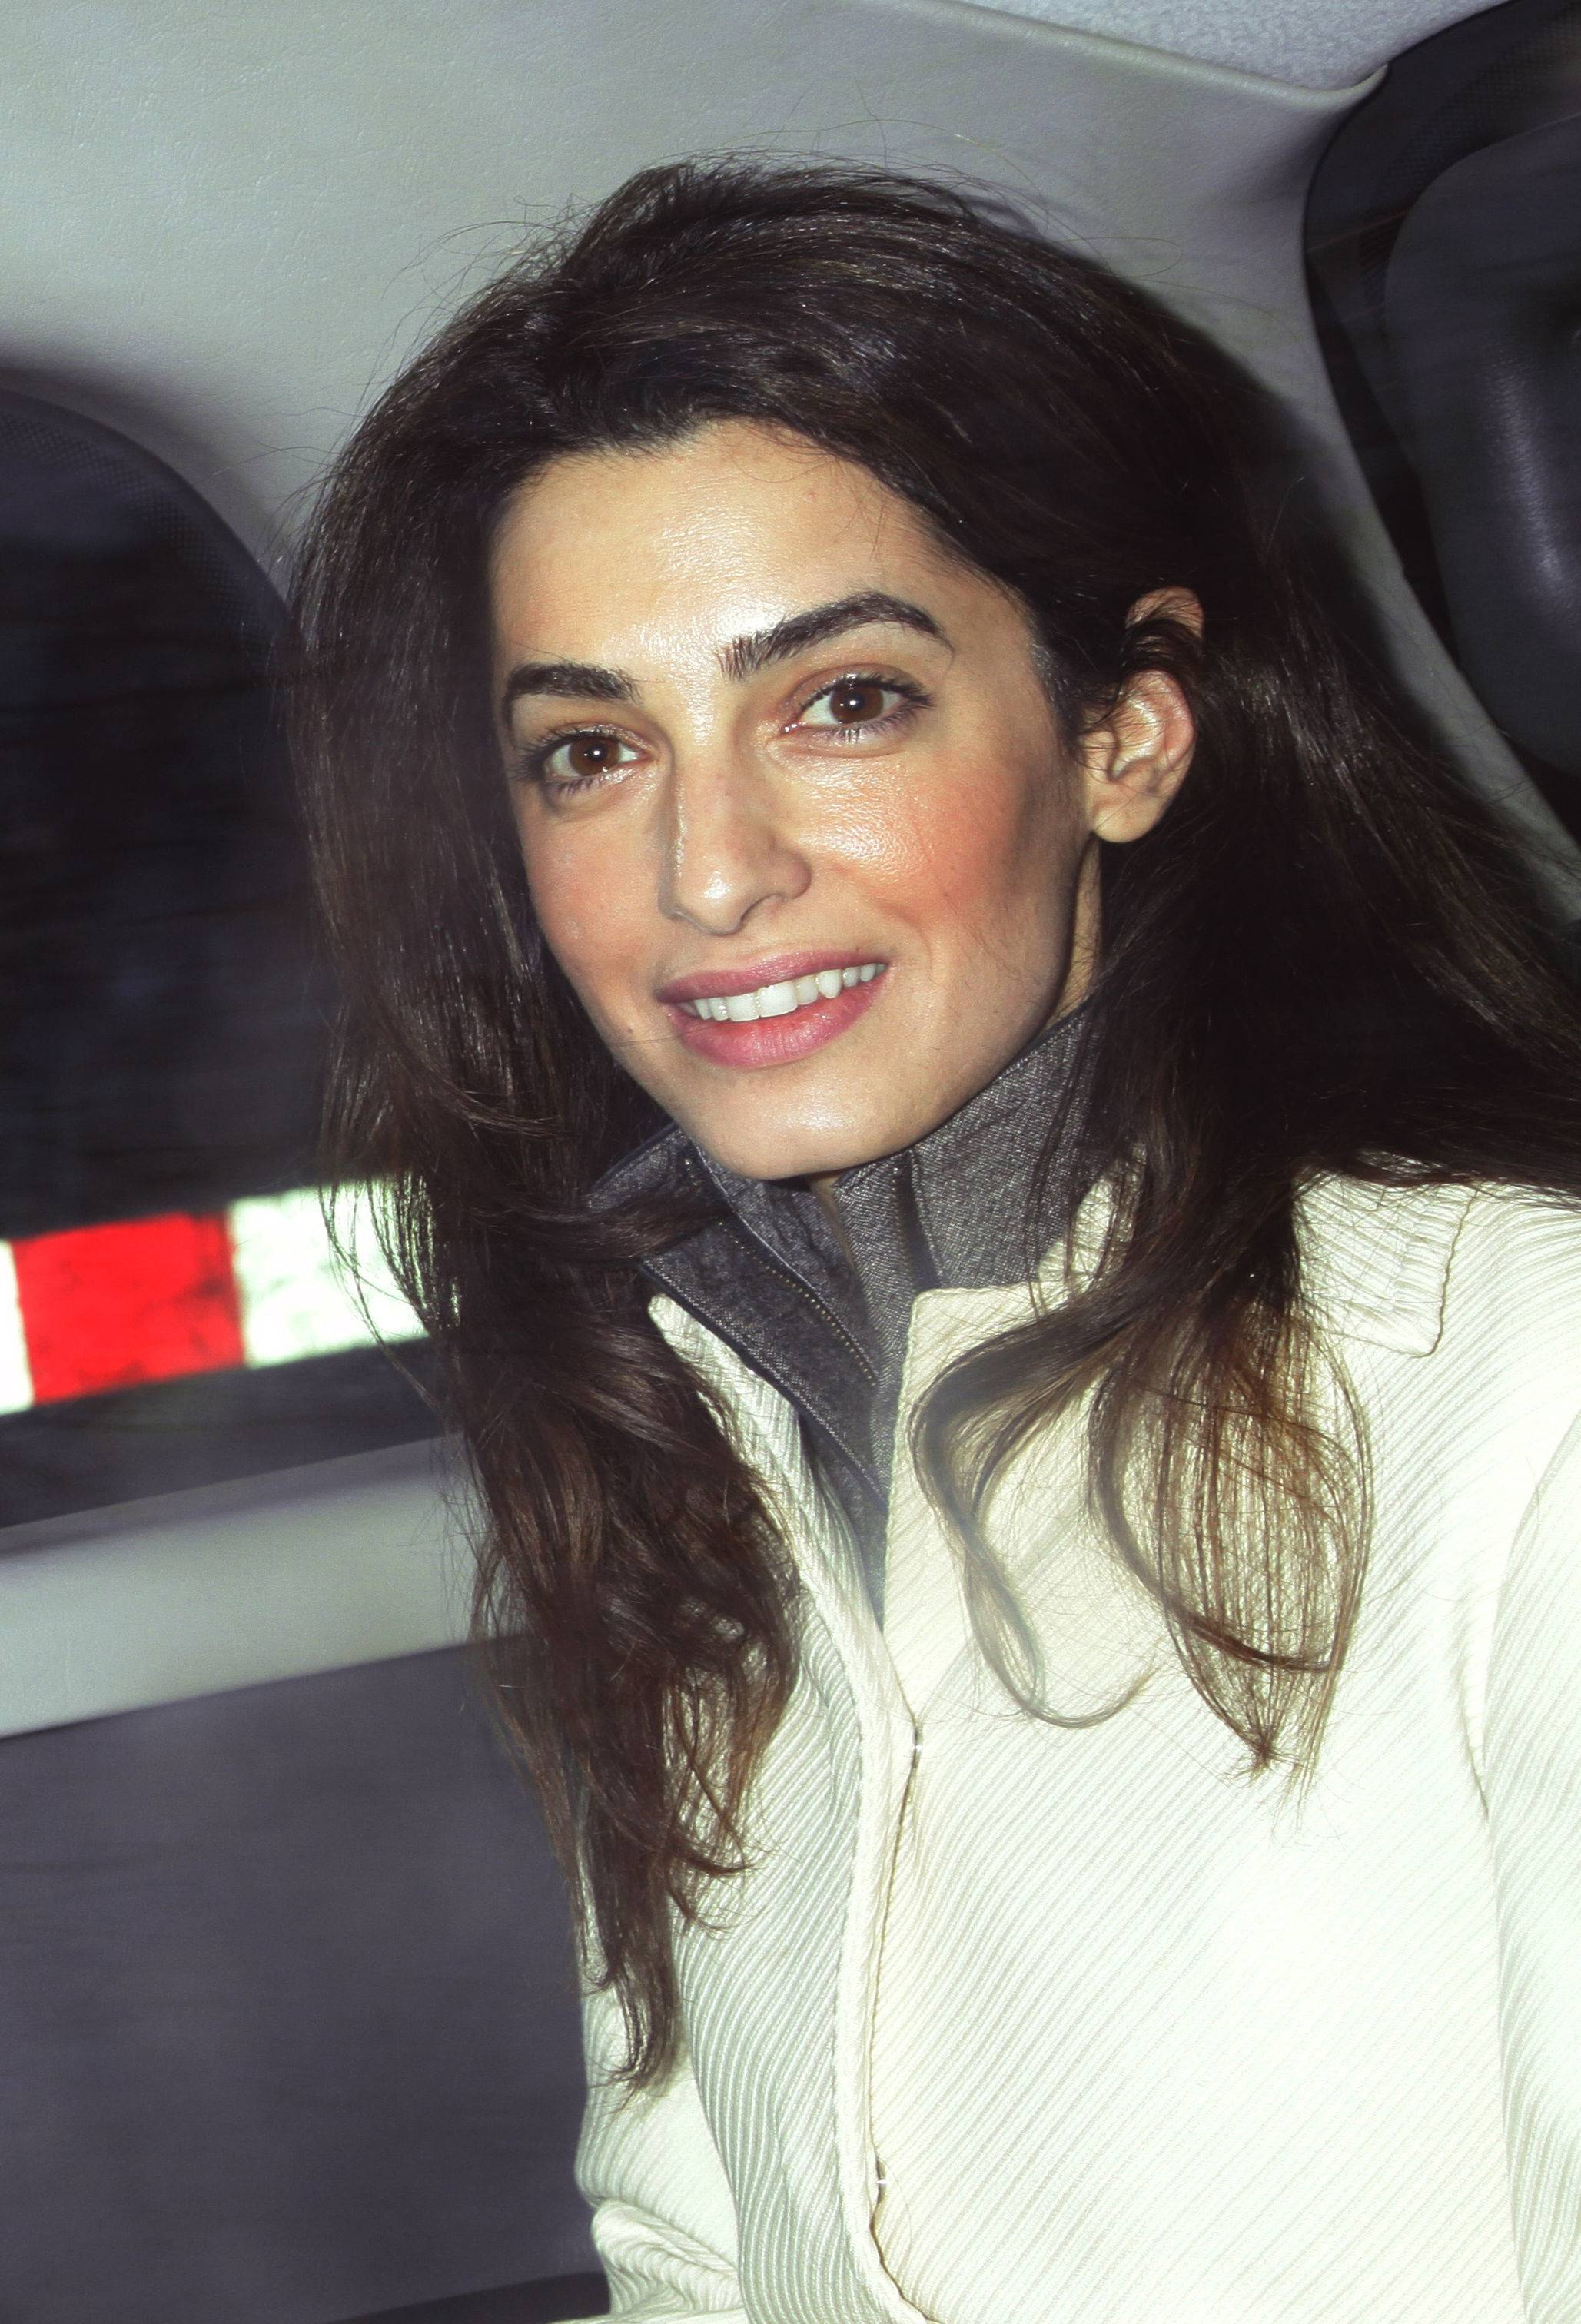 "Beirut-born Amal Alamuddin, the Oxford-educated barrister who has represented WikiLeaks founder Julian Assange and has been described as a ""passionate defender of human rights,"" may be engaged to Hollywood's most eligible bachelor, George Clooney. A London law firm on Monday congratulated Alamuddin on her engagement to George Clooney. Clooney's spokesman, Stan Rosenfield, has declined to comment."